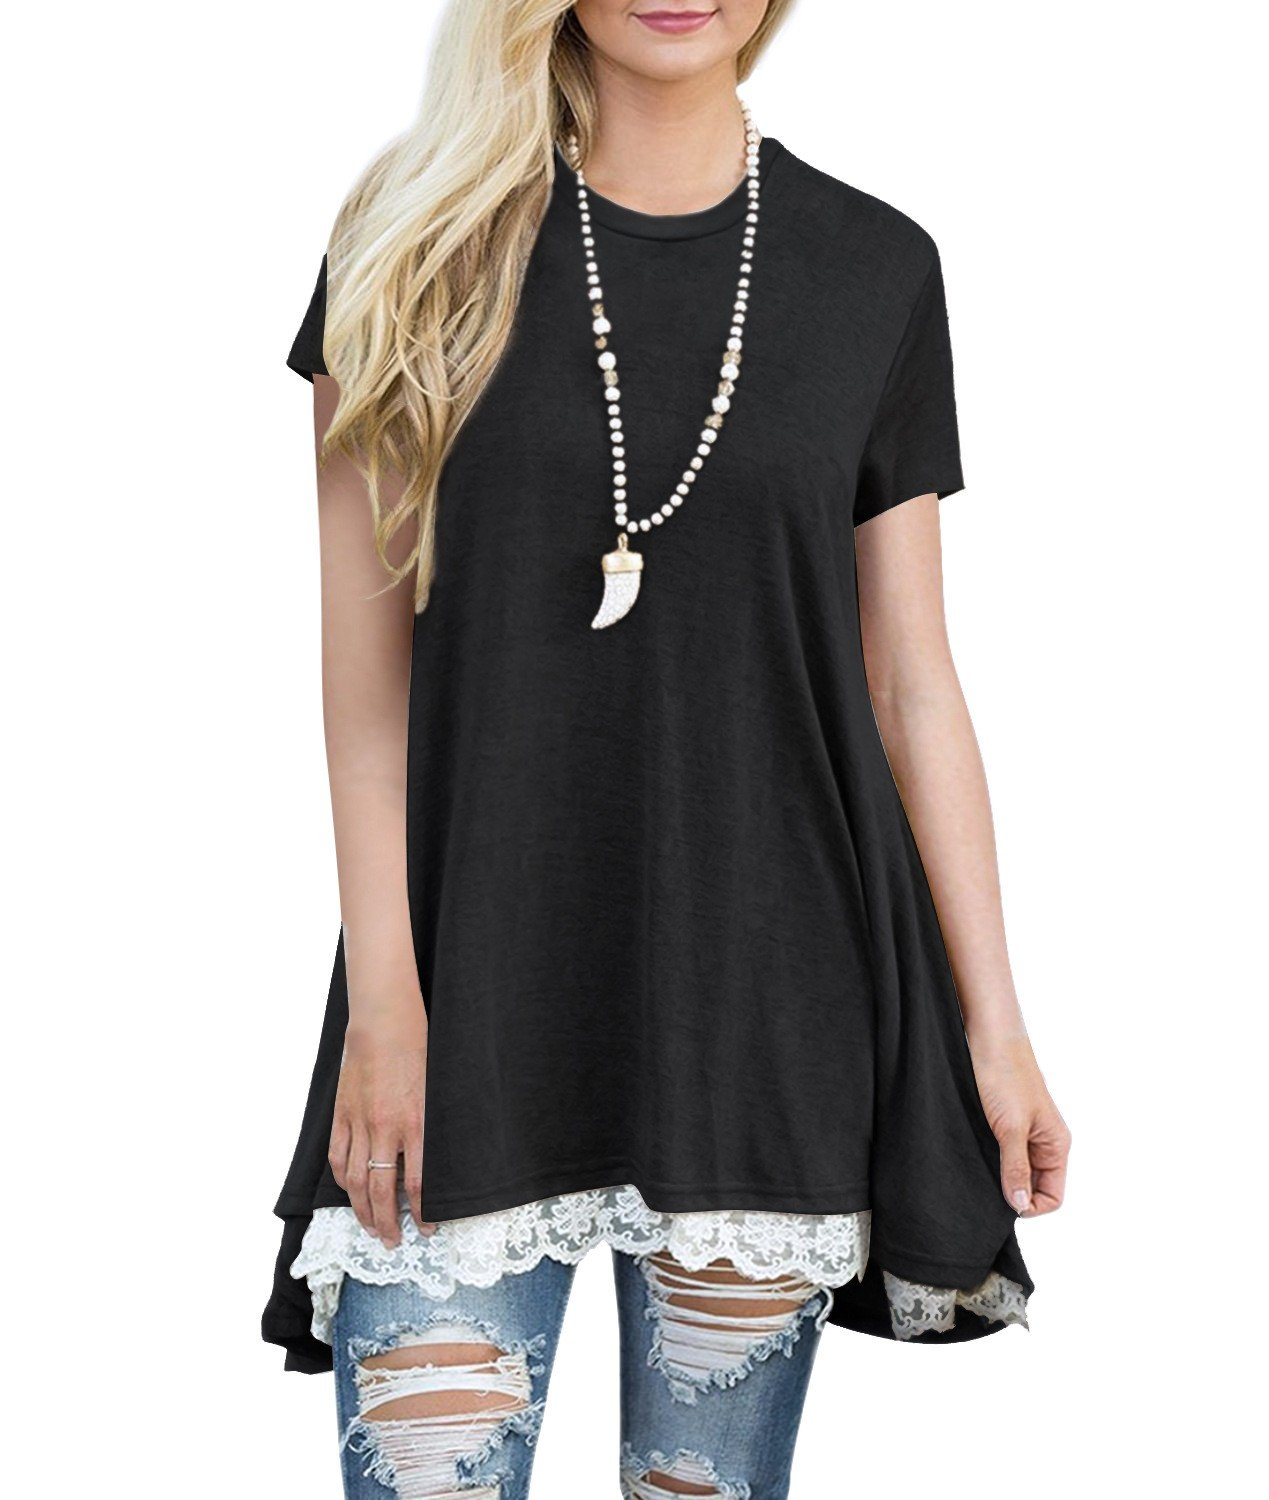 Dewapparel Women's Casual Tops Short Sleeve Lace Tunic Top Blouse